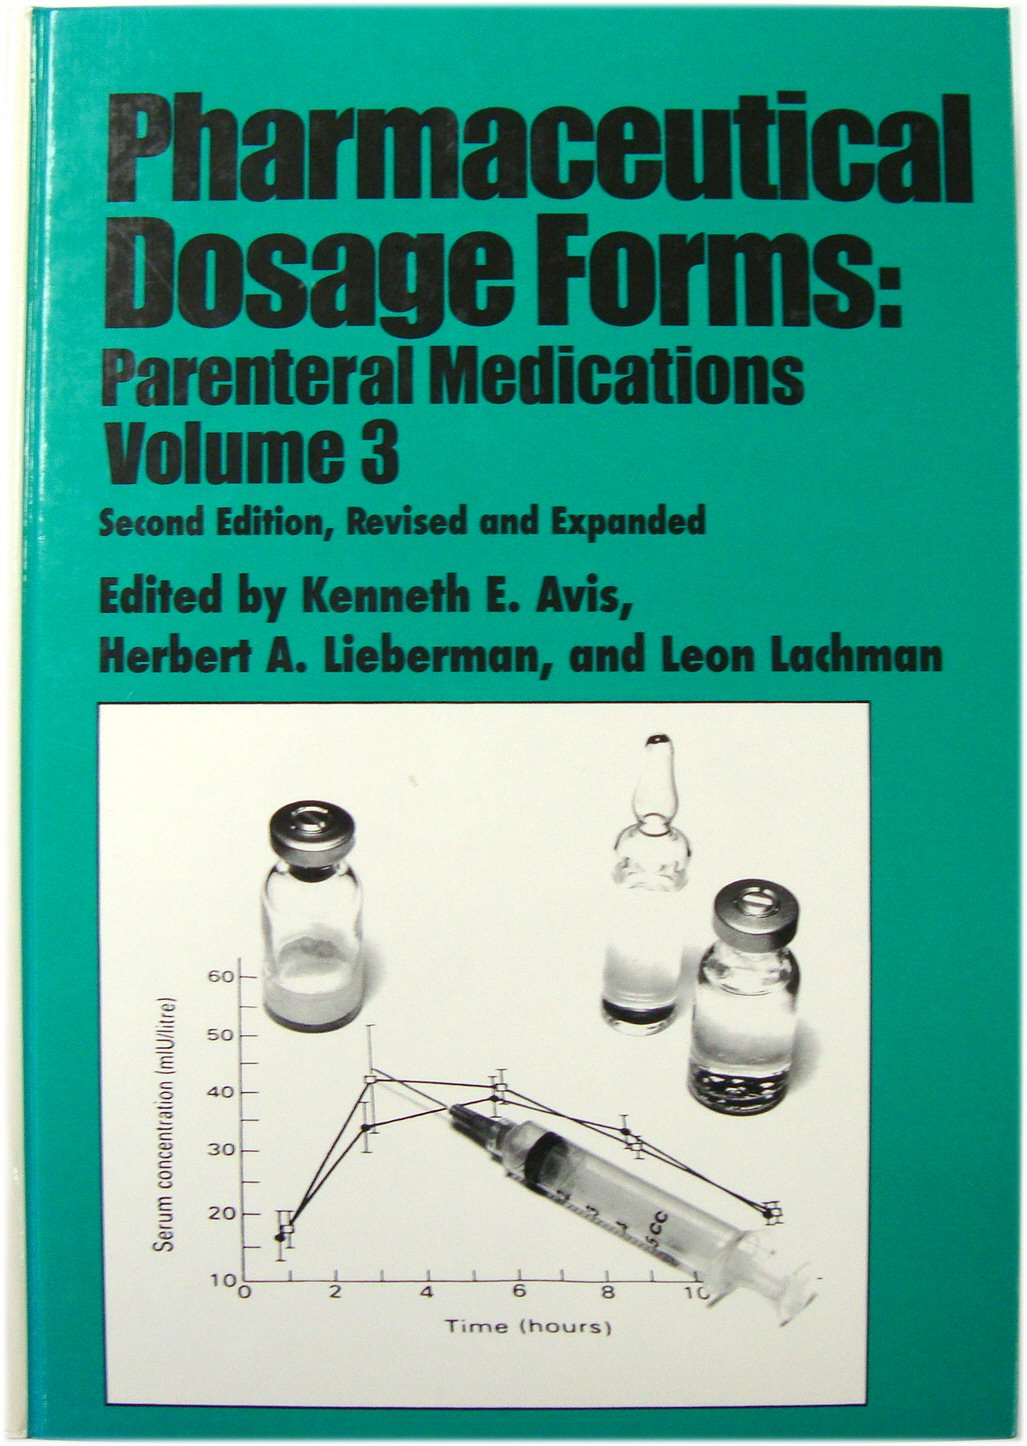 Image for Pharmaceutical Dosage Forms: Parenteral Medications, Volume 3